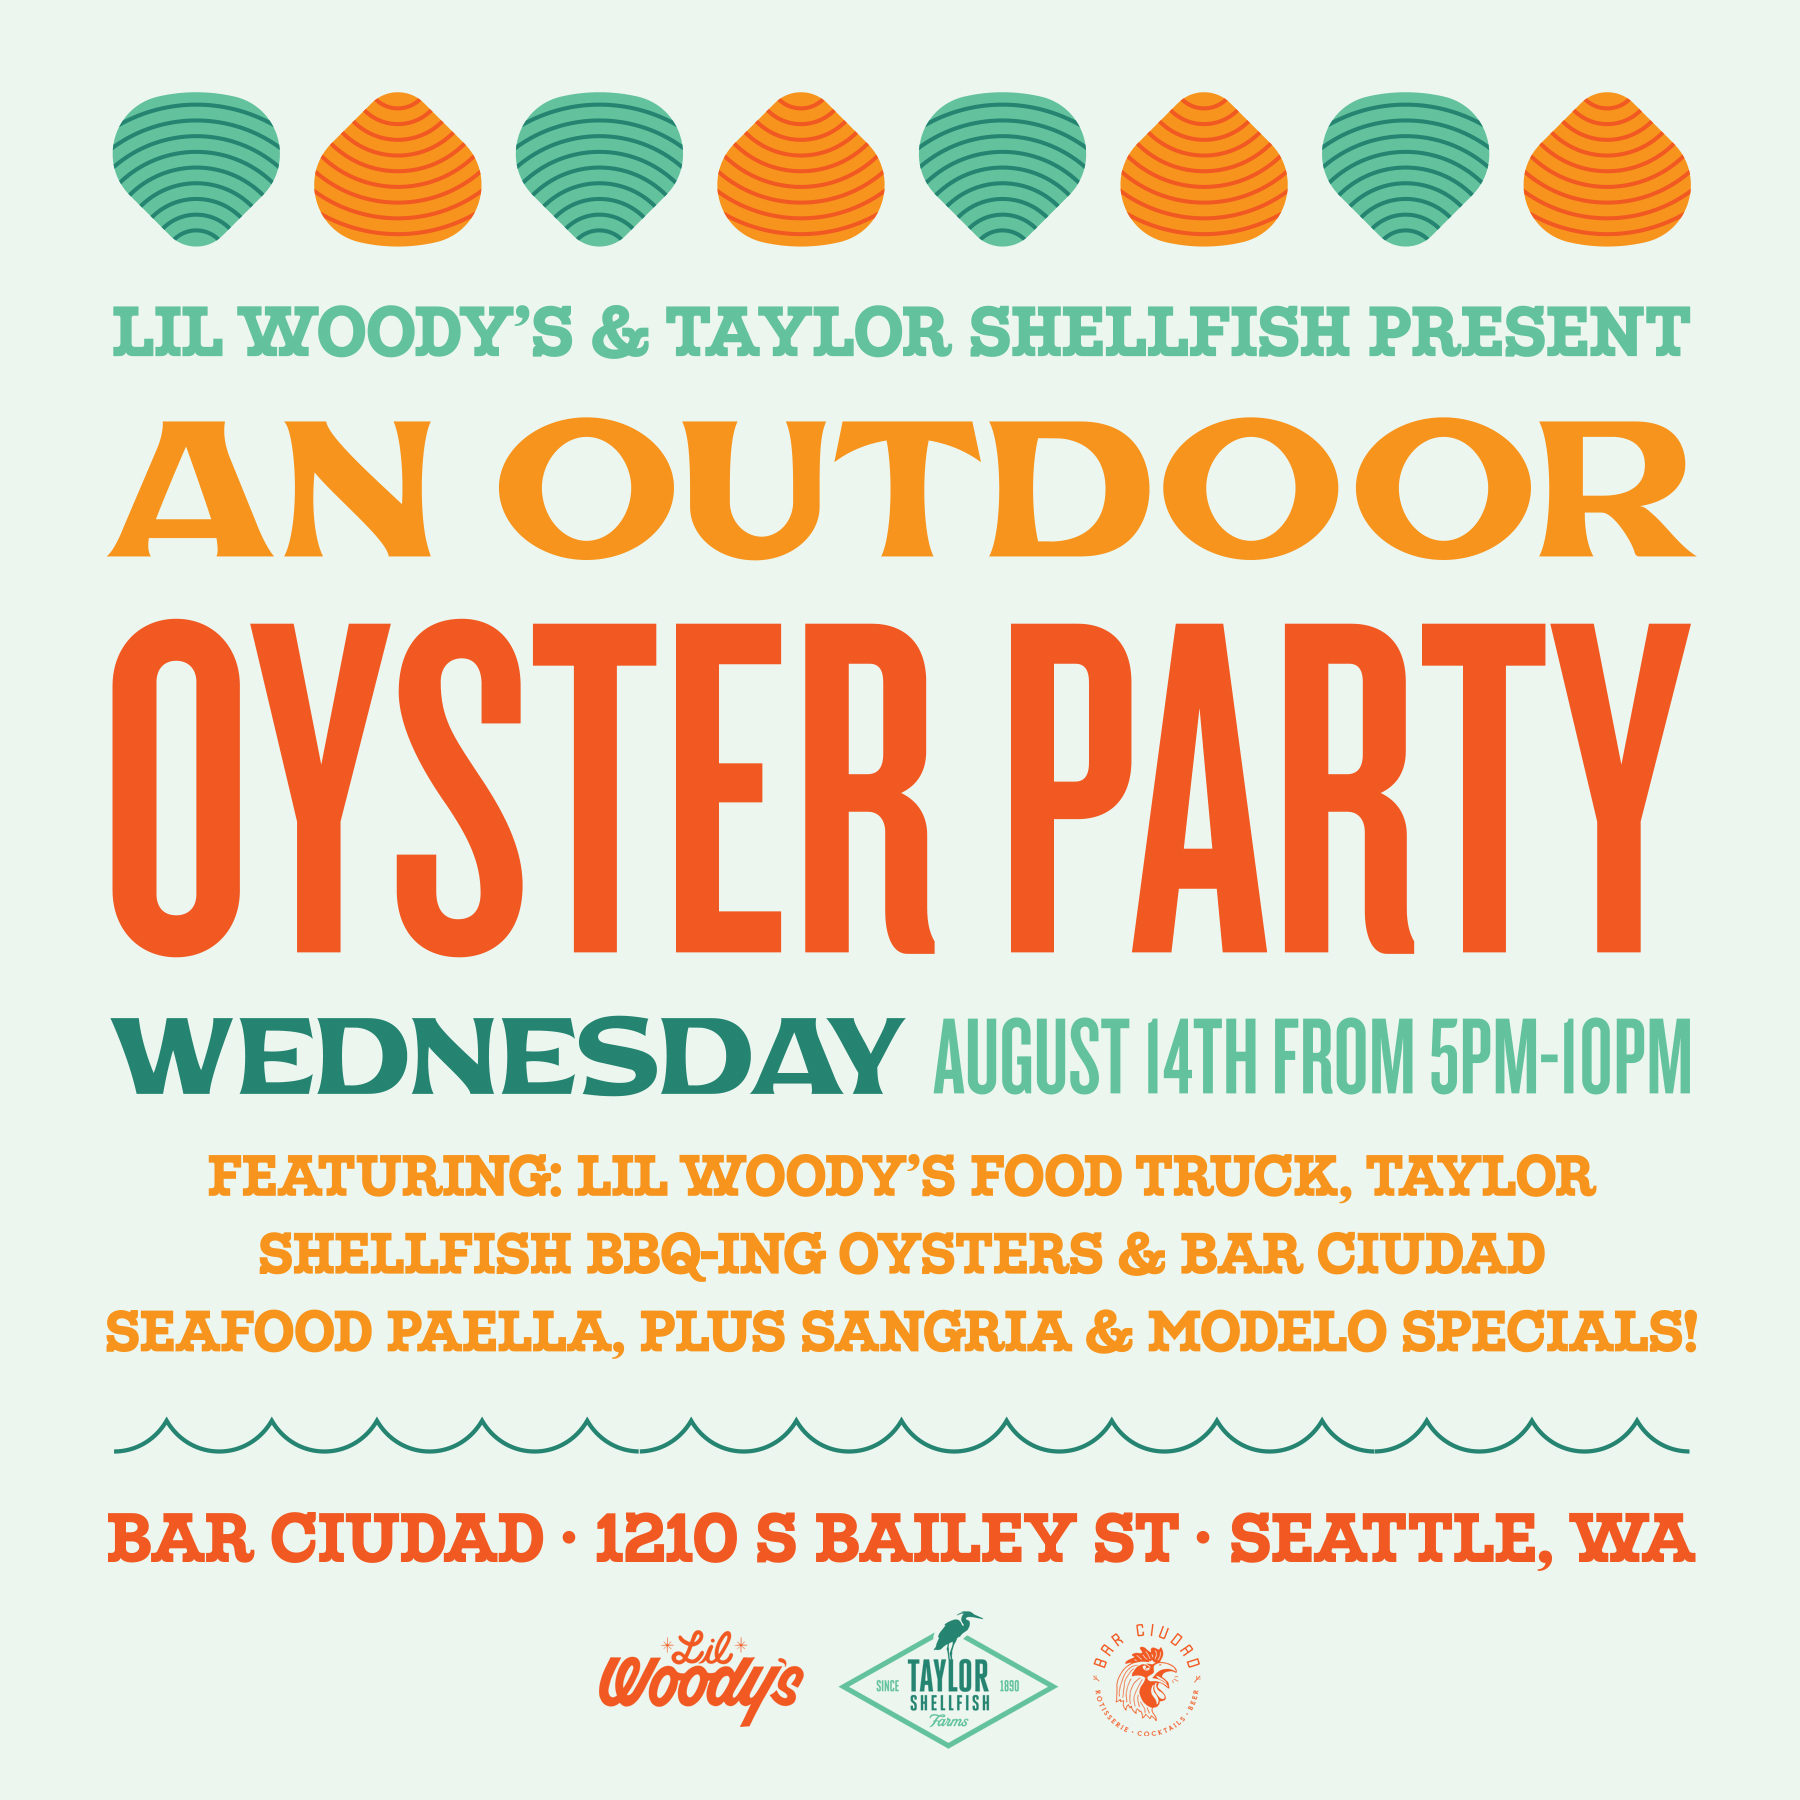 Outdoor Oyster Party - Wednesday, August 14th • 5-10pmEvent Features BBQ Oysters from Taylor Shellfish, Burgers from Lil Woody'sFood Truck, and Seafood Paella off the grill from Chef Joe Bayley.